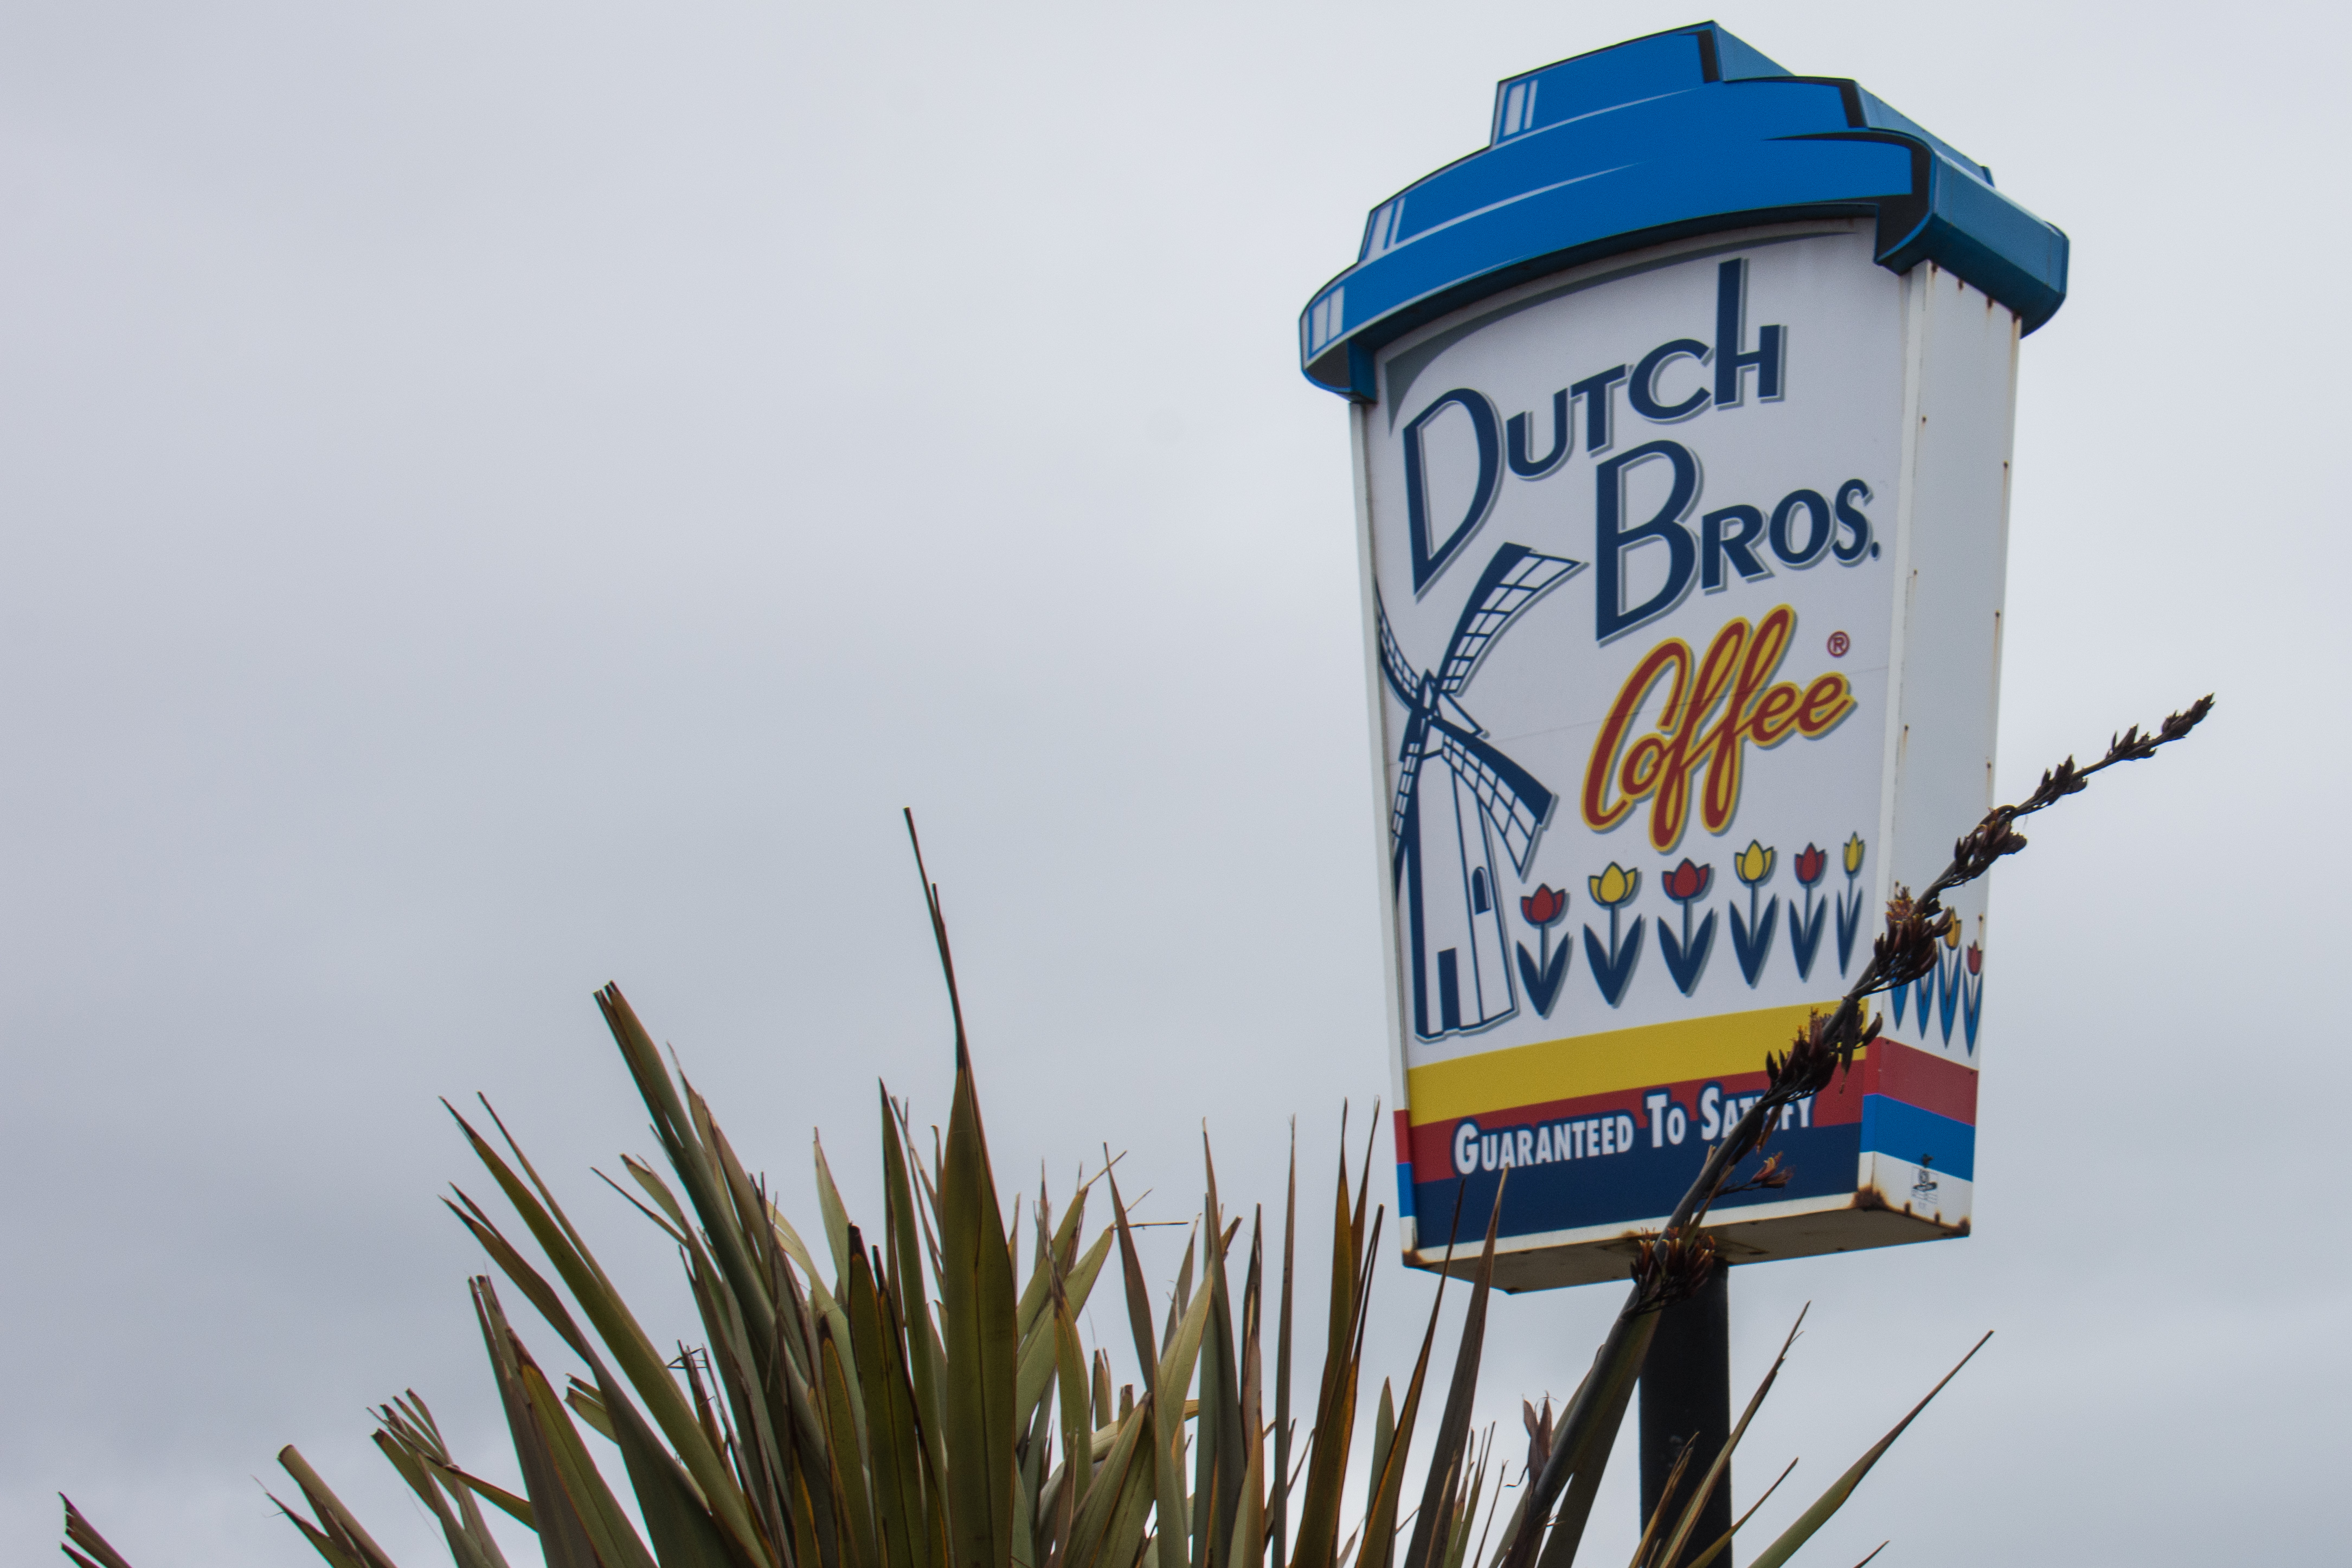 Dutch Bros. Coffee - Wikipedia on baskin-robbins location map, dunkin' donuts location map, carl's jr. location map, burger king location map, krispy kreme location map, baja fresh location map, cold stone creamery location map, el pollo loco location map, dairy queen location map, outback steakhouse location map, wendy's location map, jack in the box location map, del taco location map,